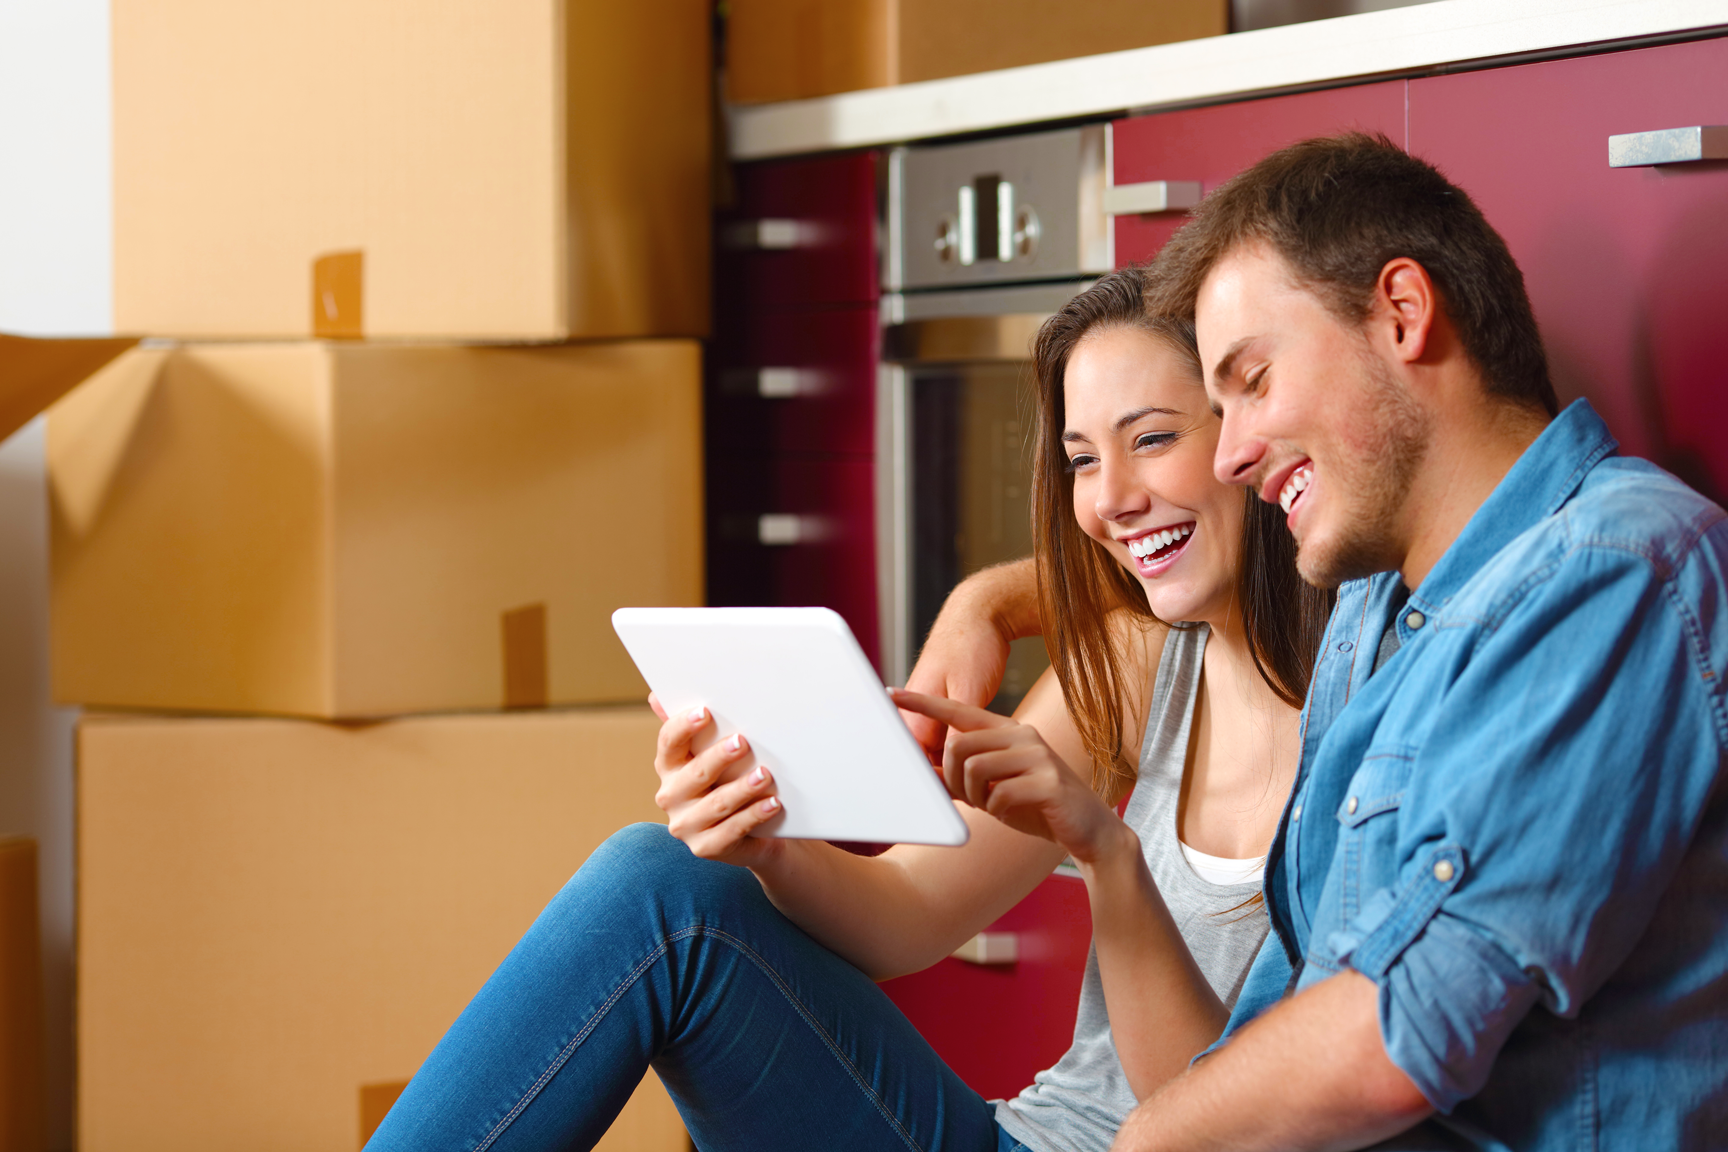 A man and a woman who are surrounded by cardboard boxes smile at a tablet